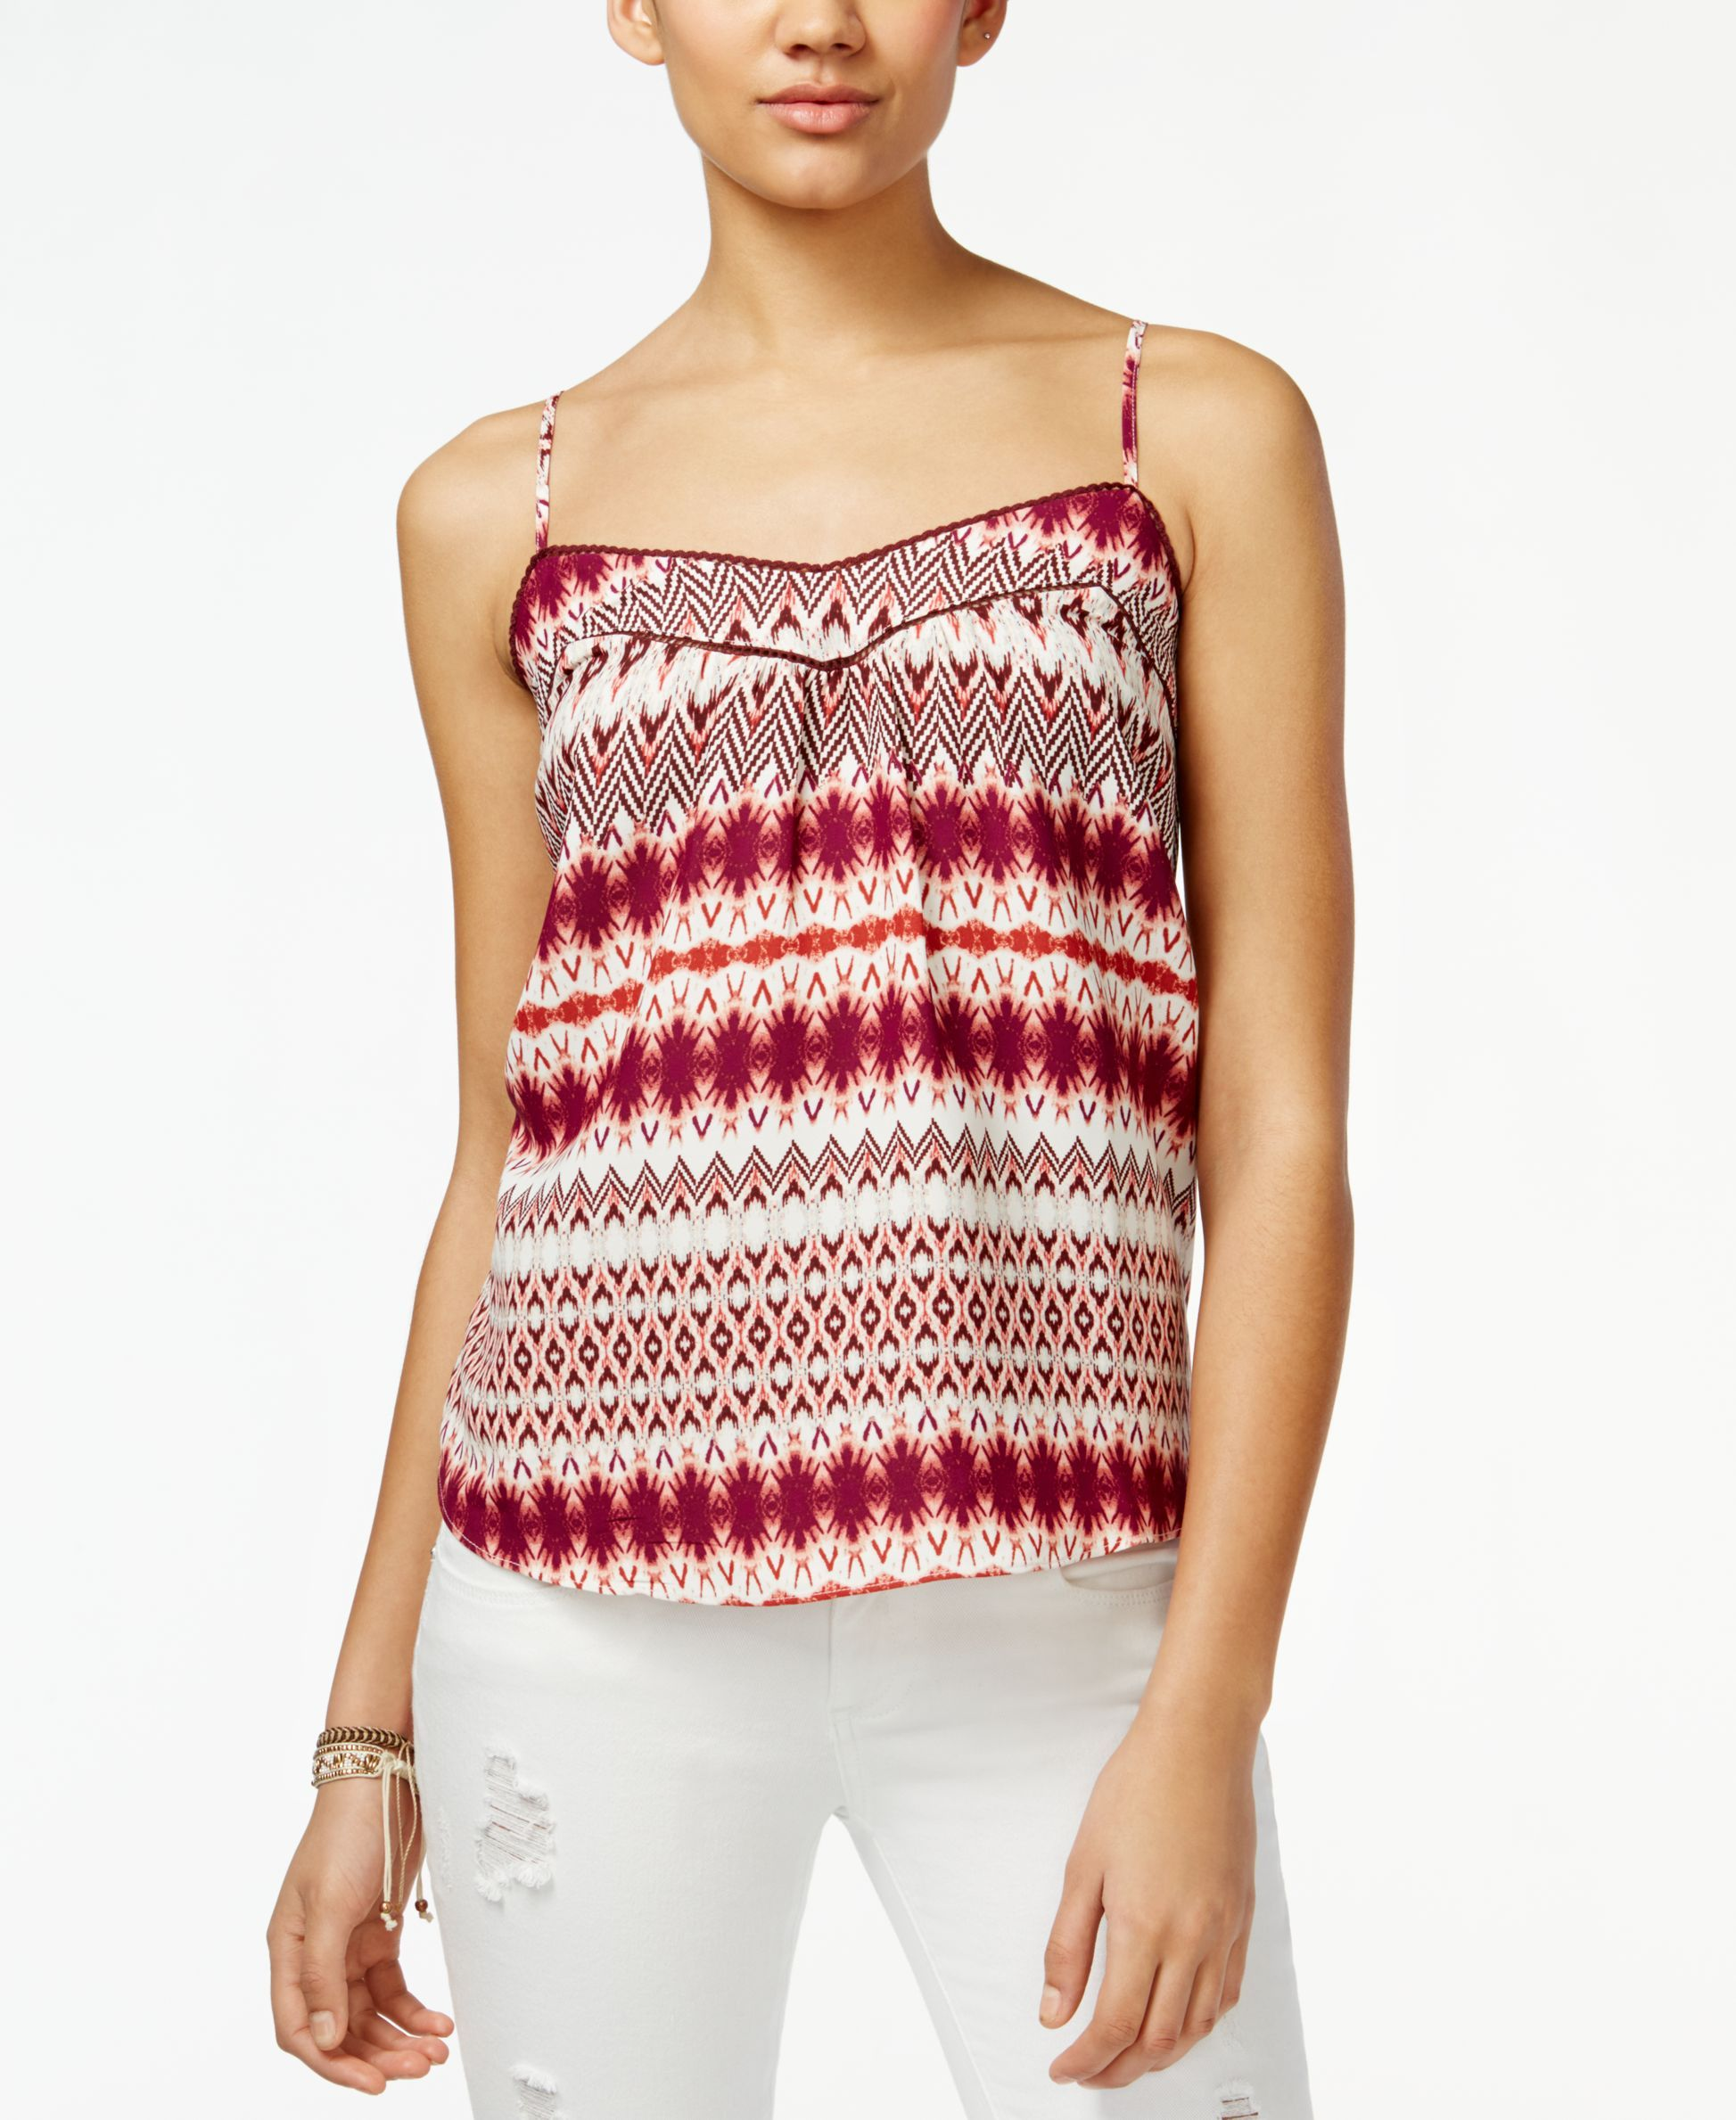 Jessica Simpson Shelby Ikat-Print Tank Top | Products | Pinterest